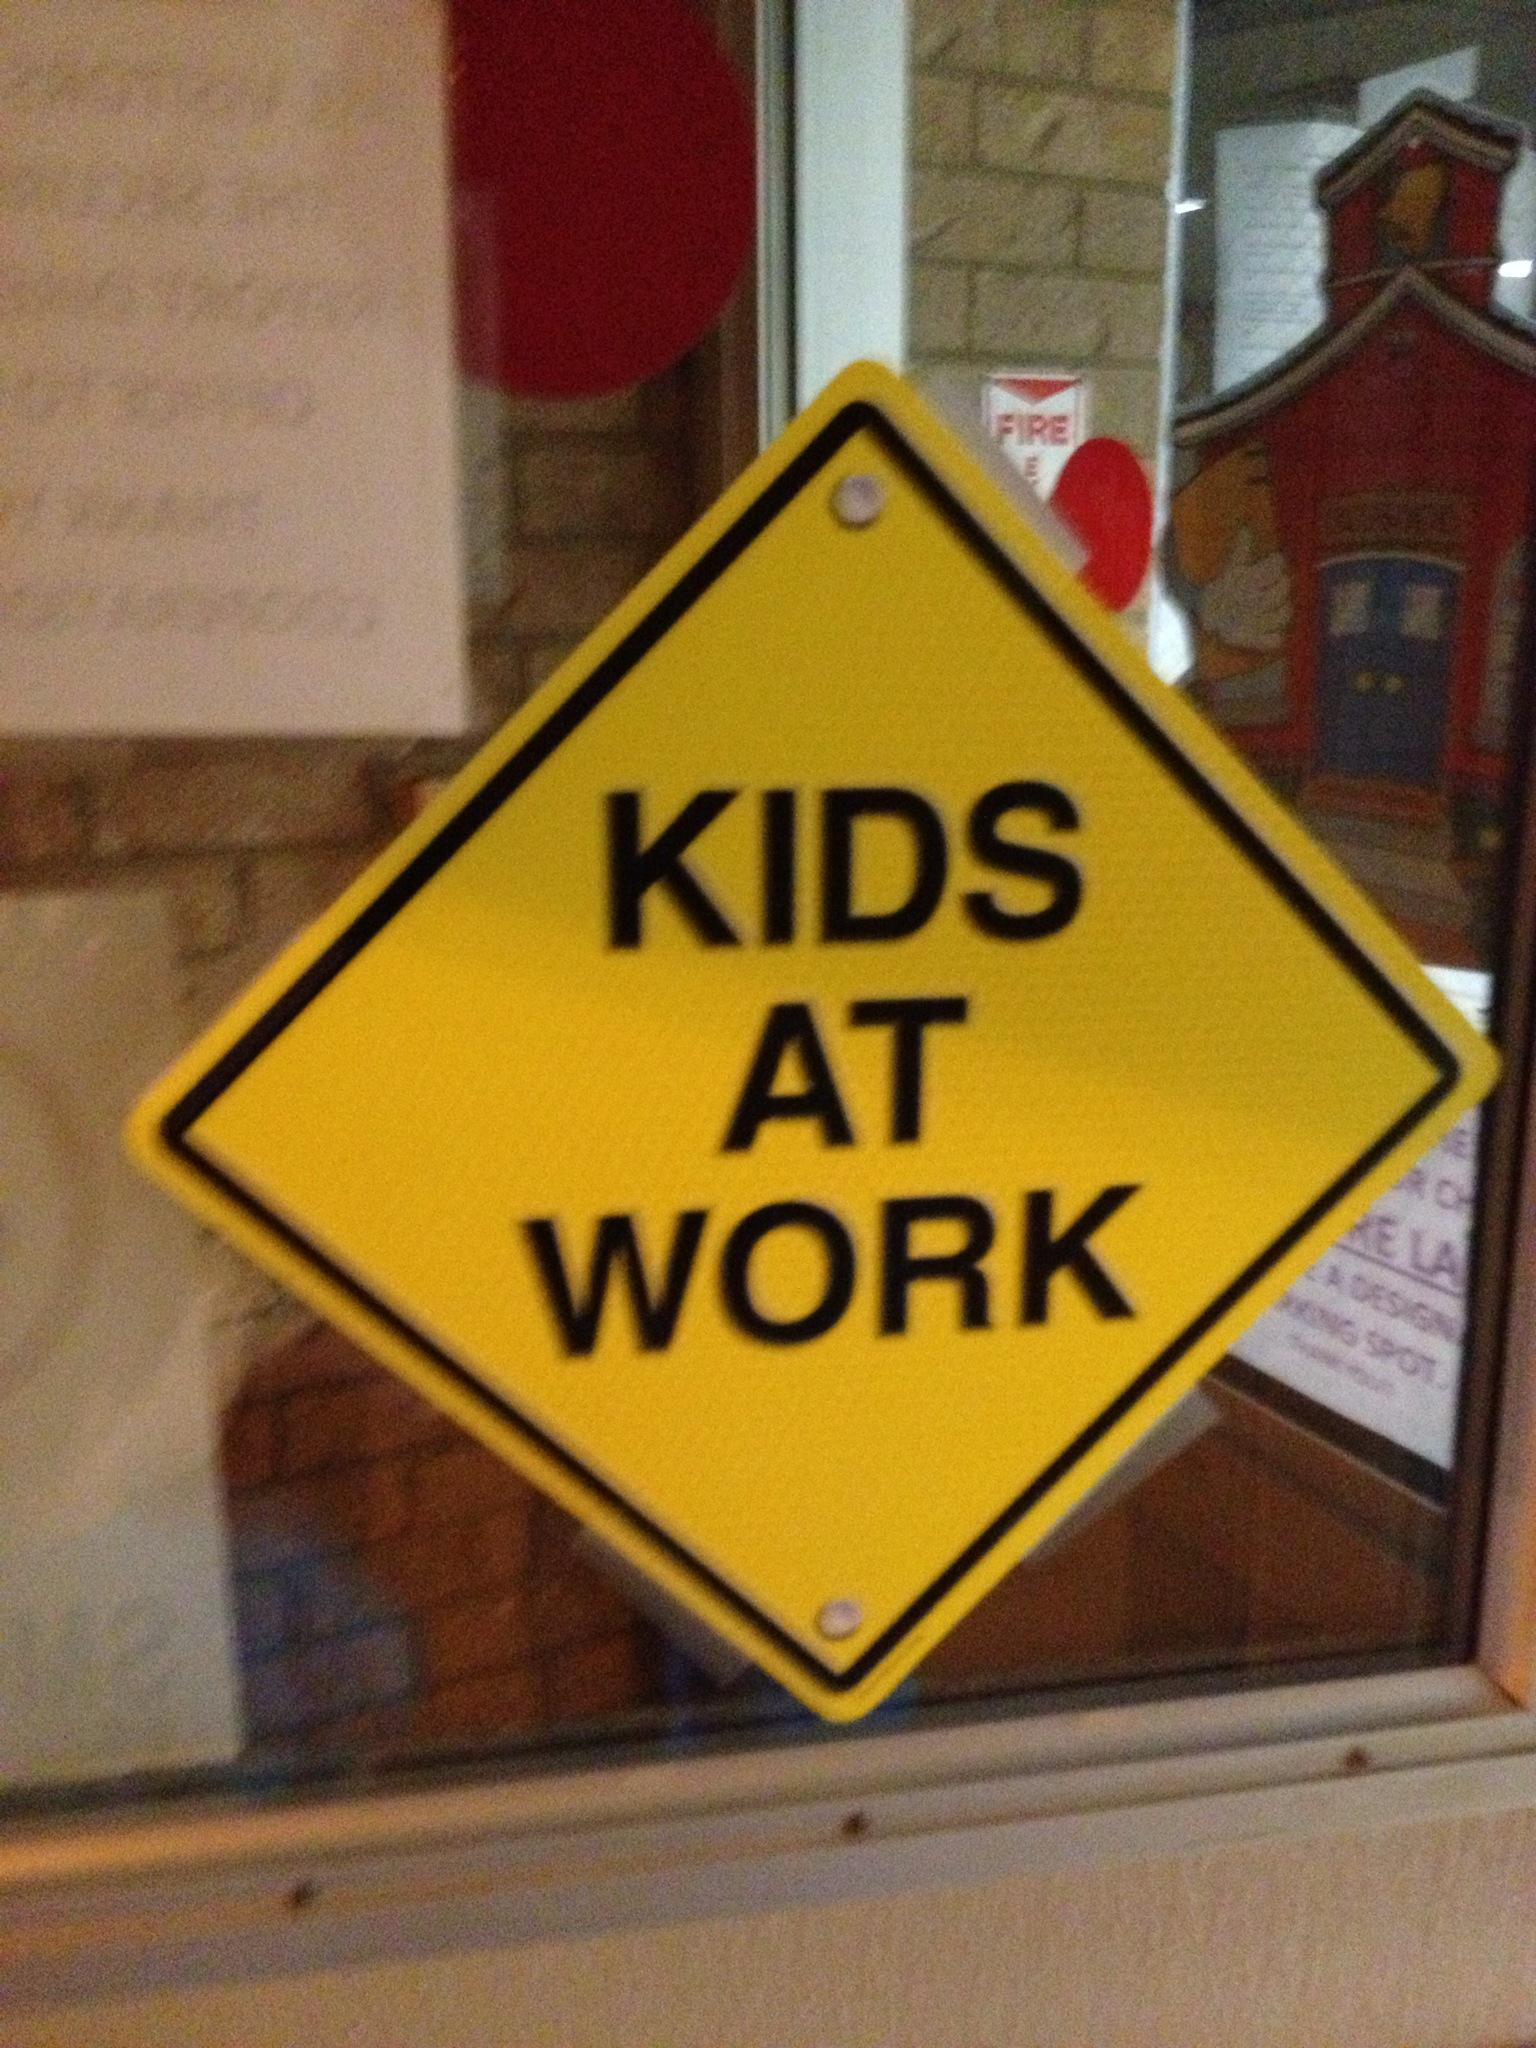 Kids at Work sign at my boys' school